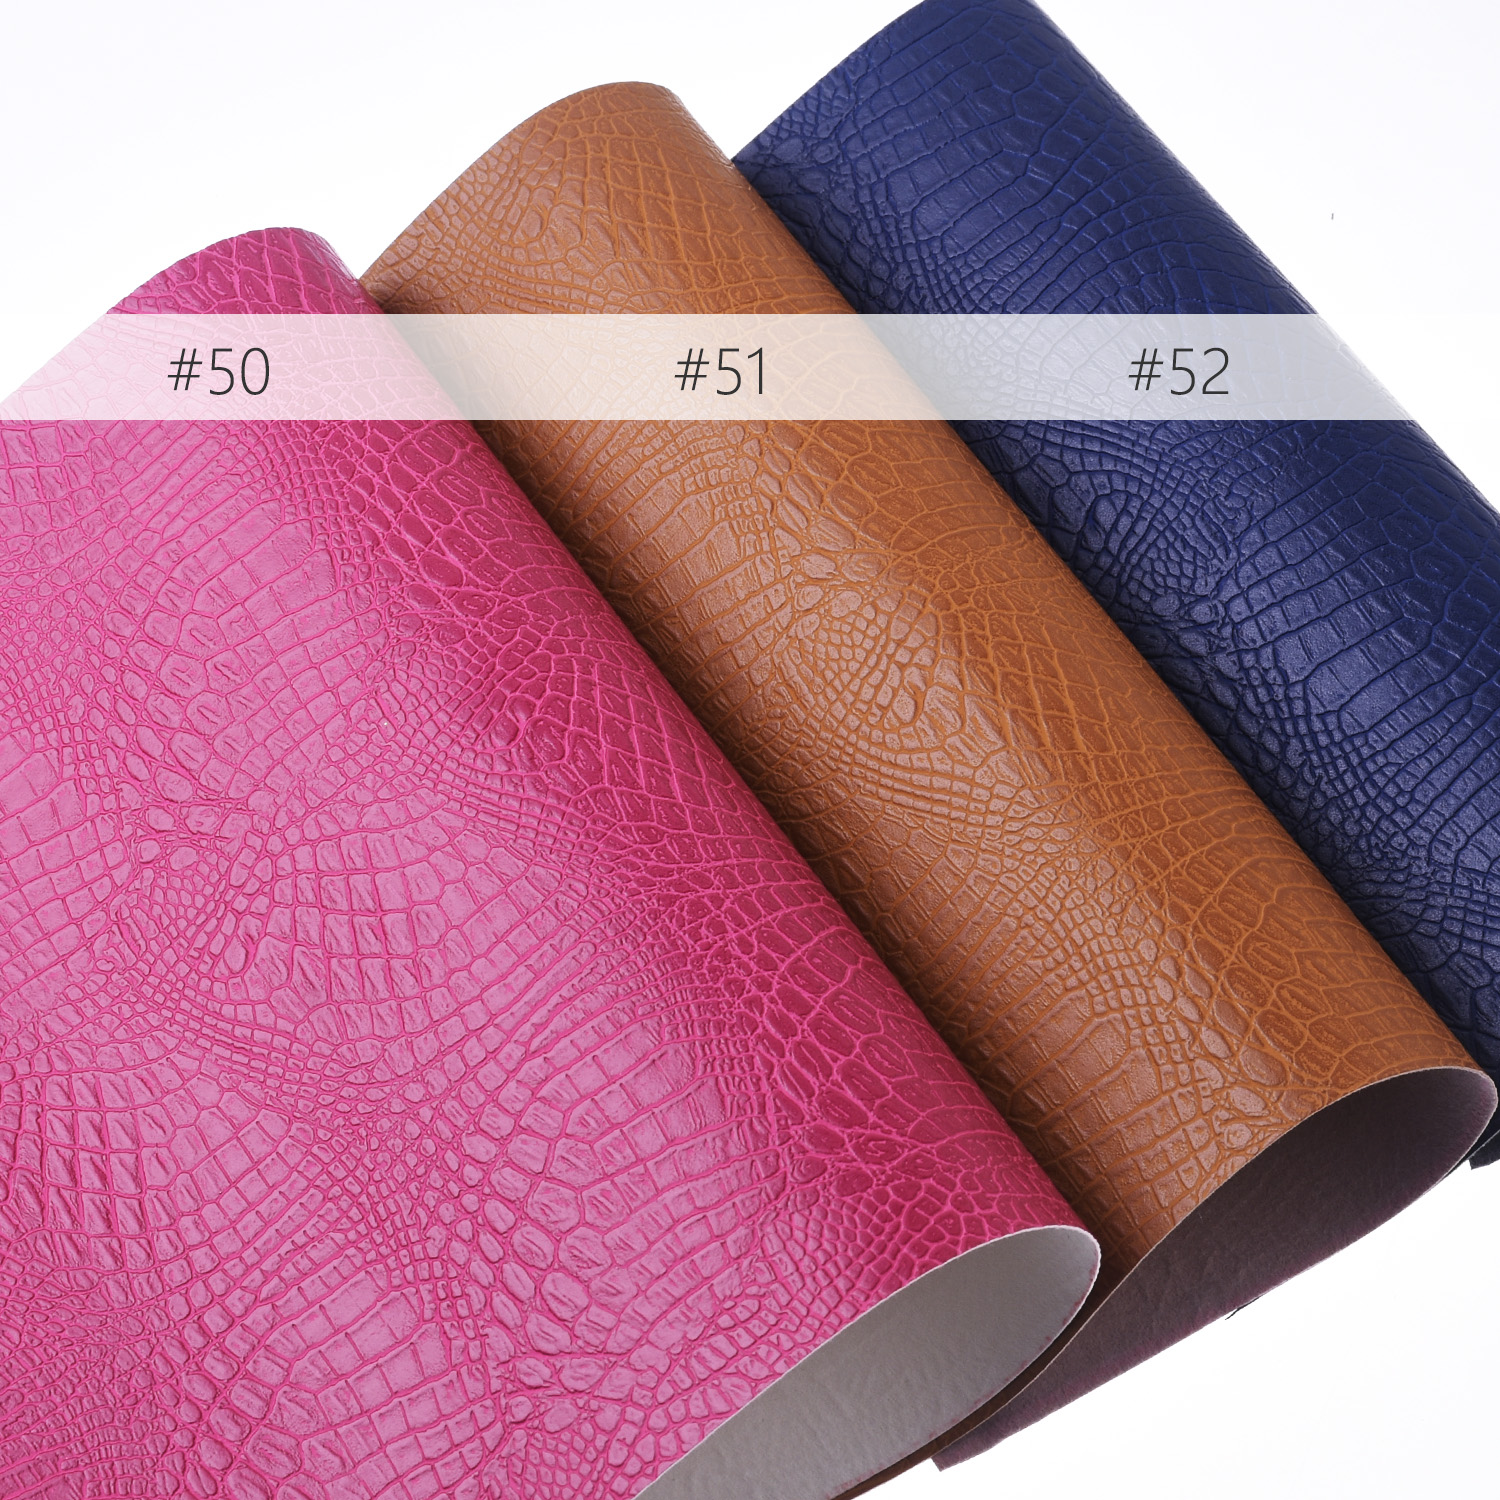 Natural Leather Colorful Leather for craft supplies 8*12 Soft Cowhide Leather,solid Genuine Leather Sheets,real Leather A4